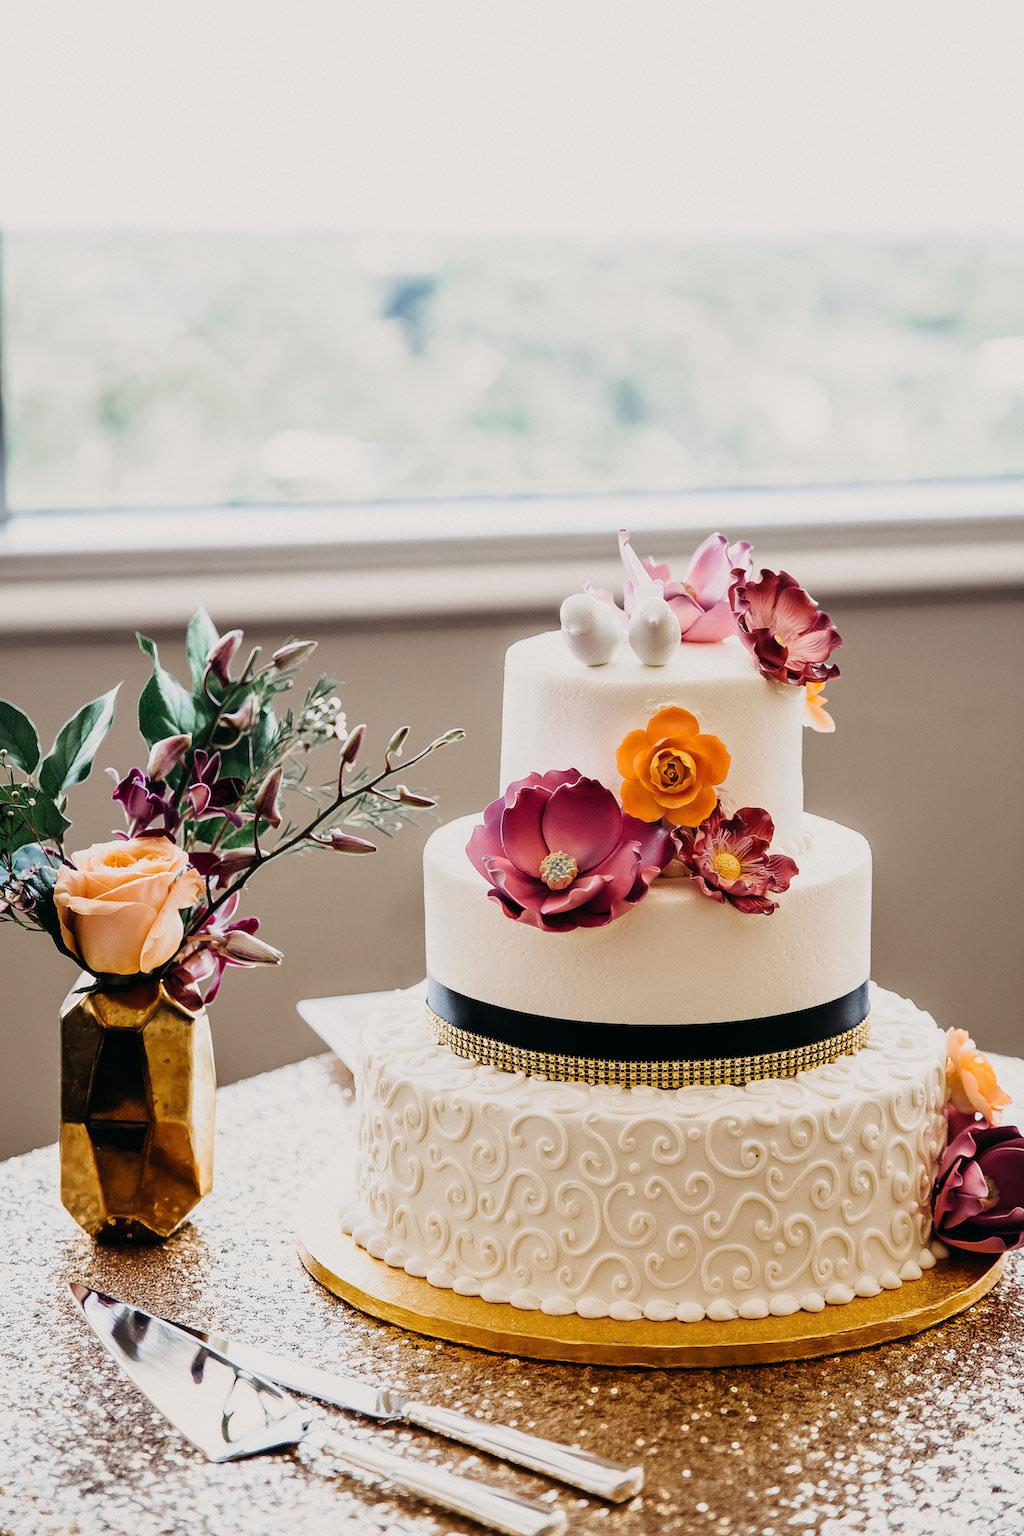 Three Tiered Round White Wedding Cake with Curly Cue Frosting and Black and Gold Stripe with Tropical Fuchsia and Orange Flowers on Gold Cake Stand   Tampa Bay Wedding